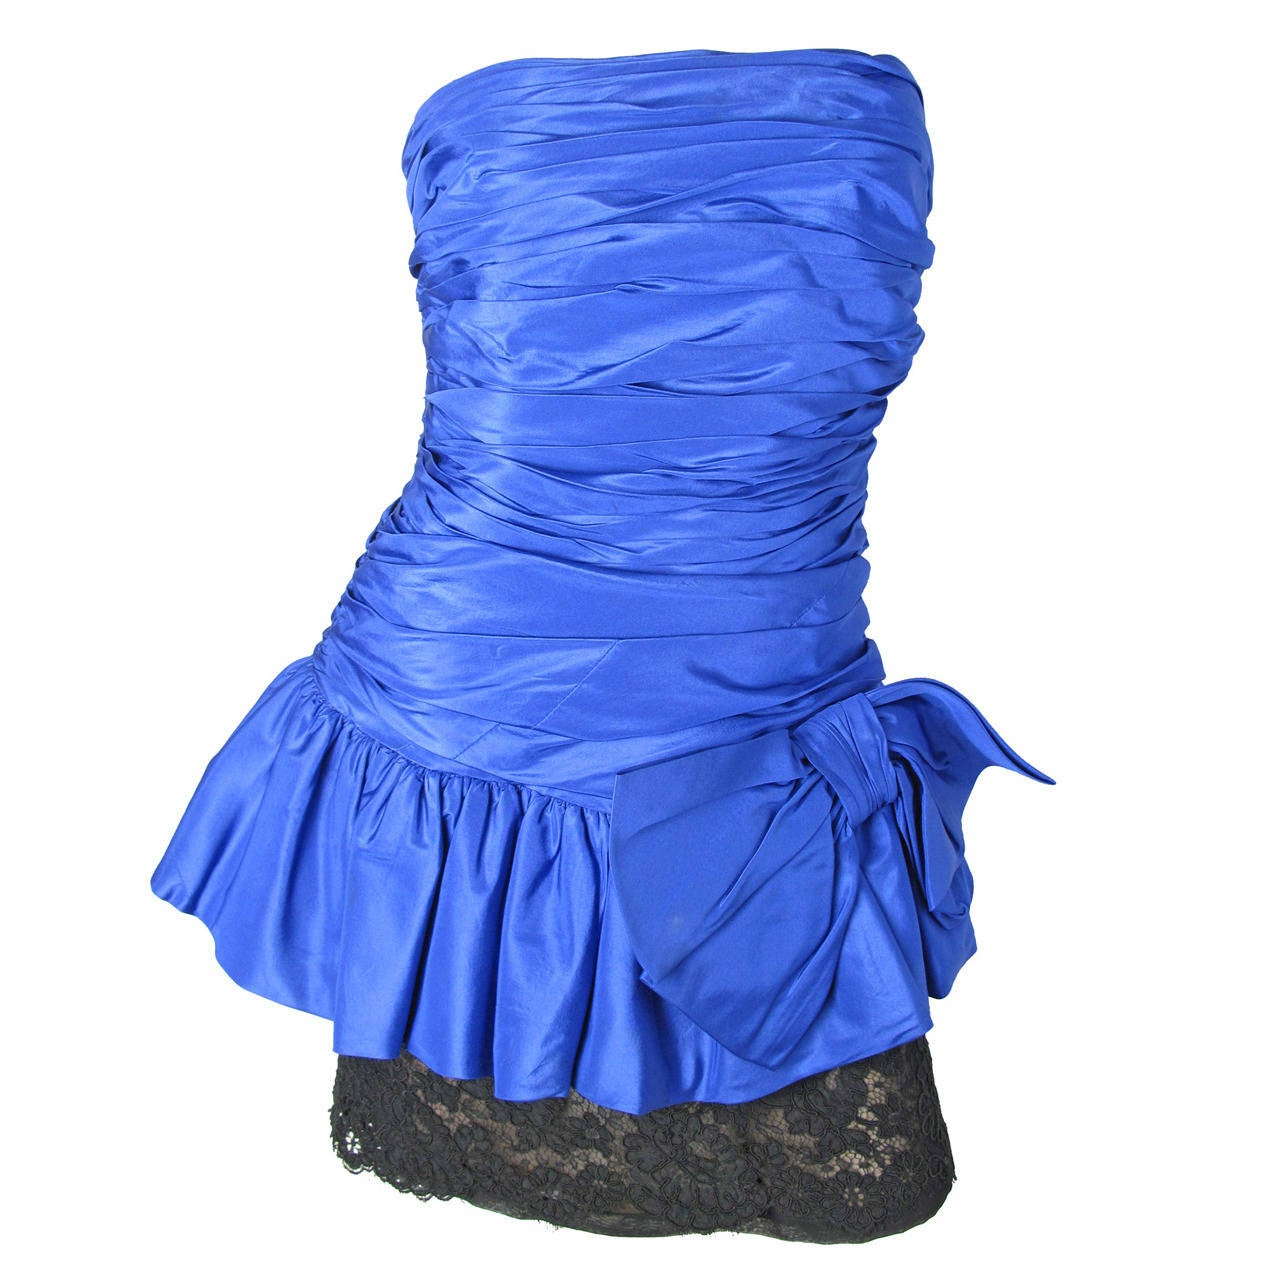 Oscar de la Renta blue taffeta and black lace strapless dress For Sale